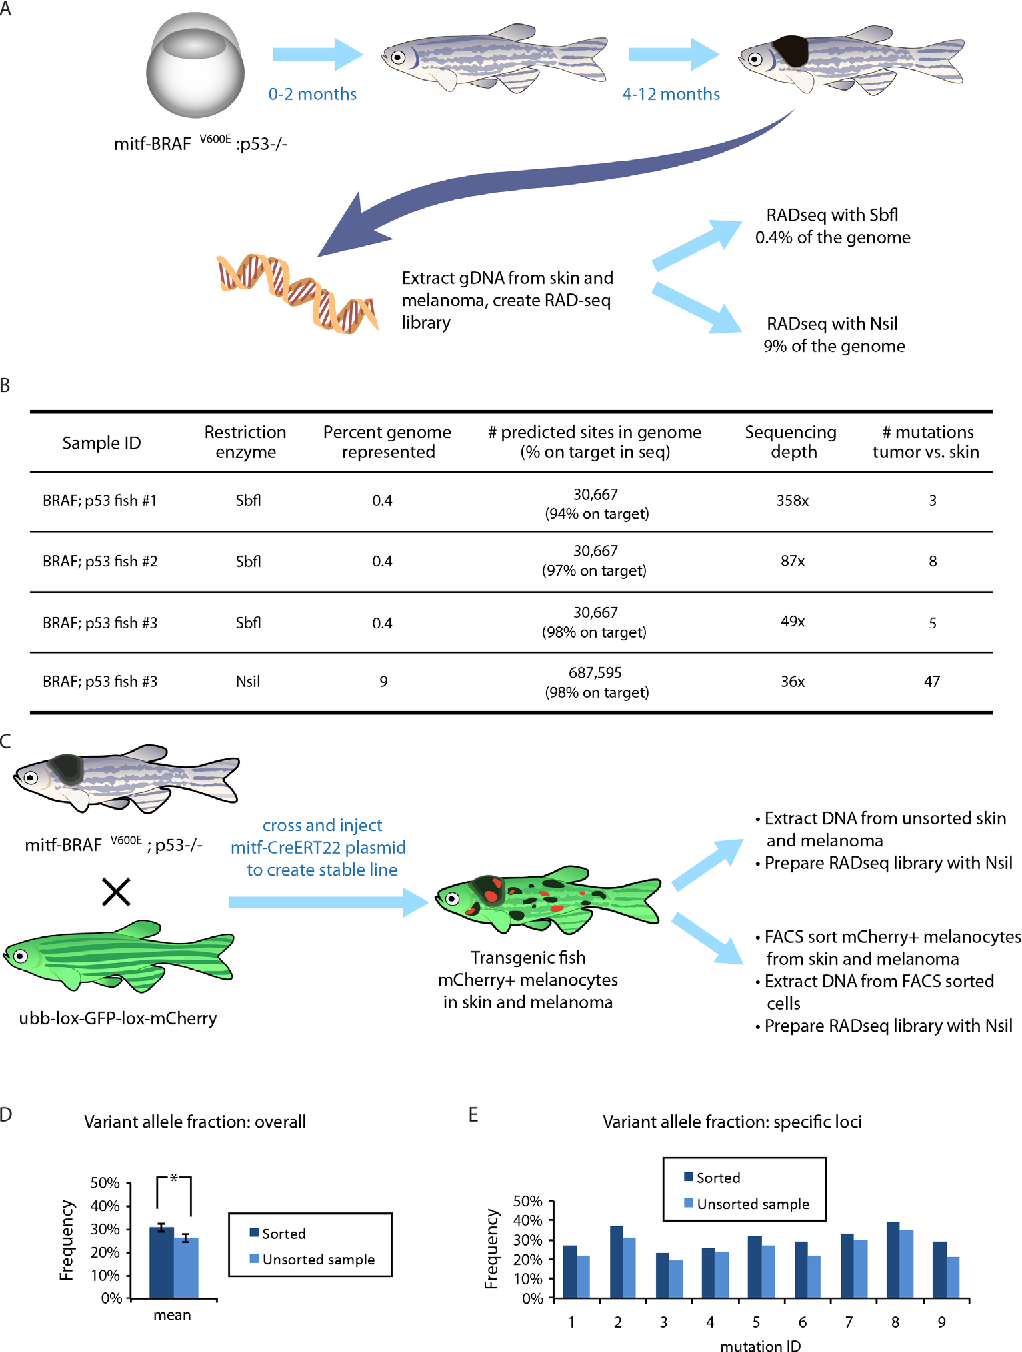 """Figure 2: Applying RADseq to a zebrafish model of melanoma. A. A transgenic zebrafish model in which the mitfa promoter drives human oncogenic BRAFV600E. The embryos (left) and young adults (center) are relatively normal, but all adults (right) develop clinically overt melanomas within 4-12 months. Genomic DNA was isolated from a melanoma as well as surrounding skin in four of these transgenic animals and RADseq libraries were created from gDNA using either SbfI (0.4% of the genome) or NsiI (9% of the genome). B. The efficiency of reads mapping to restriction enzyme cut sites in the genome, along with the depth of coverage and the number of mutations discovered in each melanoma. We found a small number of mutations in 3 melanomas when sampling 0.4% of the genome. For one fish, the same genomic DNA was used for RADseq with NsiI, and shows a much higher number of mutations, given the greater coverage of the genome. C. A fate-mapping transgenic line was created to assess the efficiency of RADseq on subpopulations of cells. The mitf-BRAF;p53 model was bred with a fluorescent color """"switch"""" line in which a floxed GFP cassette can be swapped for an mCherry cassette upon Cre-mediated recombination. This cross was injected with a melanocyte-specific mitf-CreERT2 plasmid. Upon endoxifen or tamoxifen treatment, a subset of the melanocytes in the skin as well as within the melanoma switched from GFP to mCherry. Genomic DNA was extracted from either the bulk tumor/skin, or from FACS sorted mCherry+ melanocytes from the tumor/skin pair. D. Overall variant allele fractions across all mutations in the sorted vs. unsorted populations showed a significant increase in the mCherry+ subpopulations (*,p < 0.05, t-test). E. Individual mutation variant allele fractions are shown, consistently demonstrating increased sensitivity in the sorted population, which facilitates higher-confidence mutation calling in subclonal populations."""